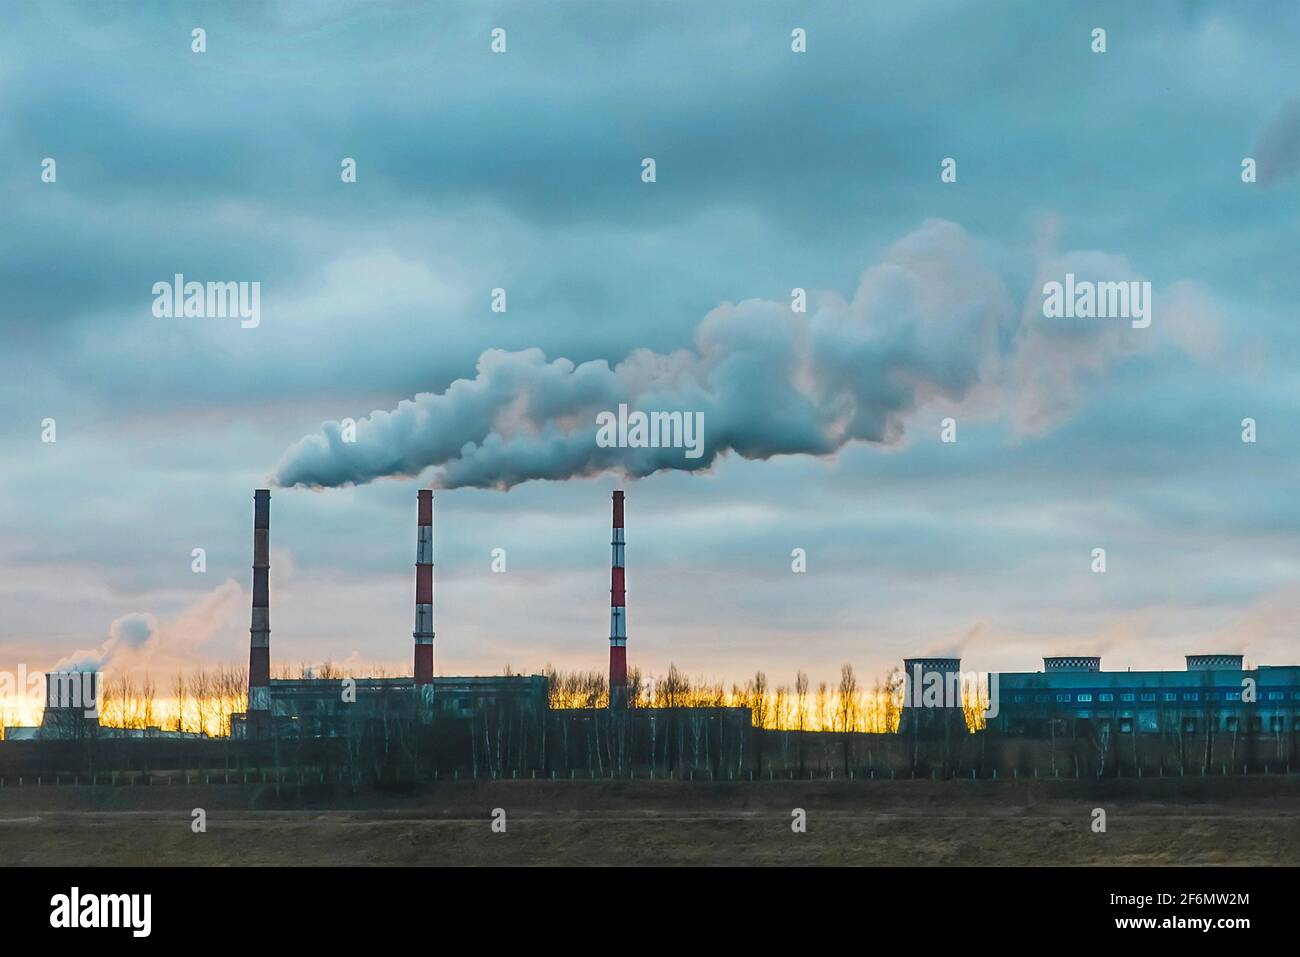 Environmental pollution, environmental problem, smoke from the chimney of an industrial plant or thermal power plant against a cloudy blue sky. Stock Photo